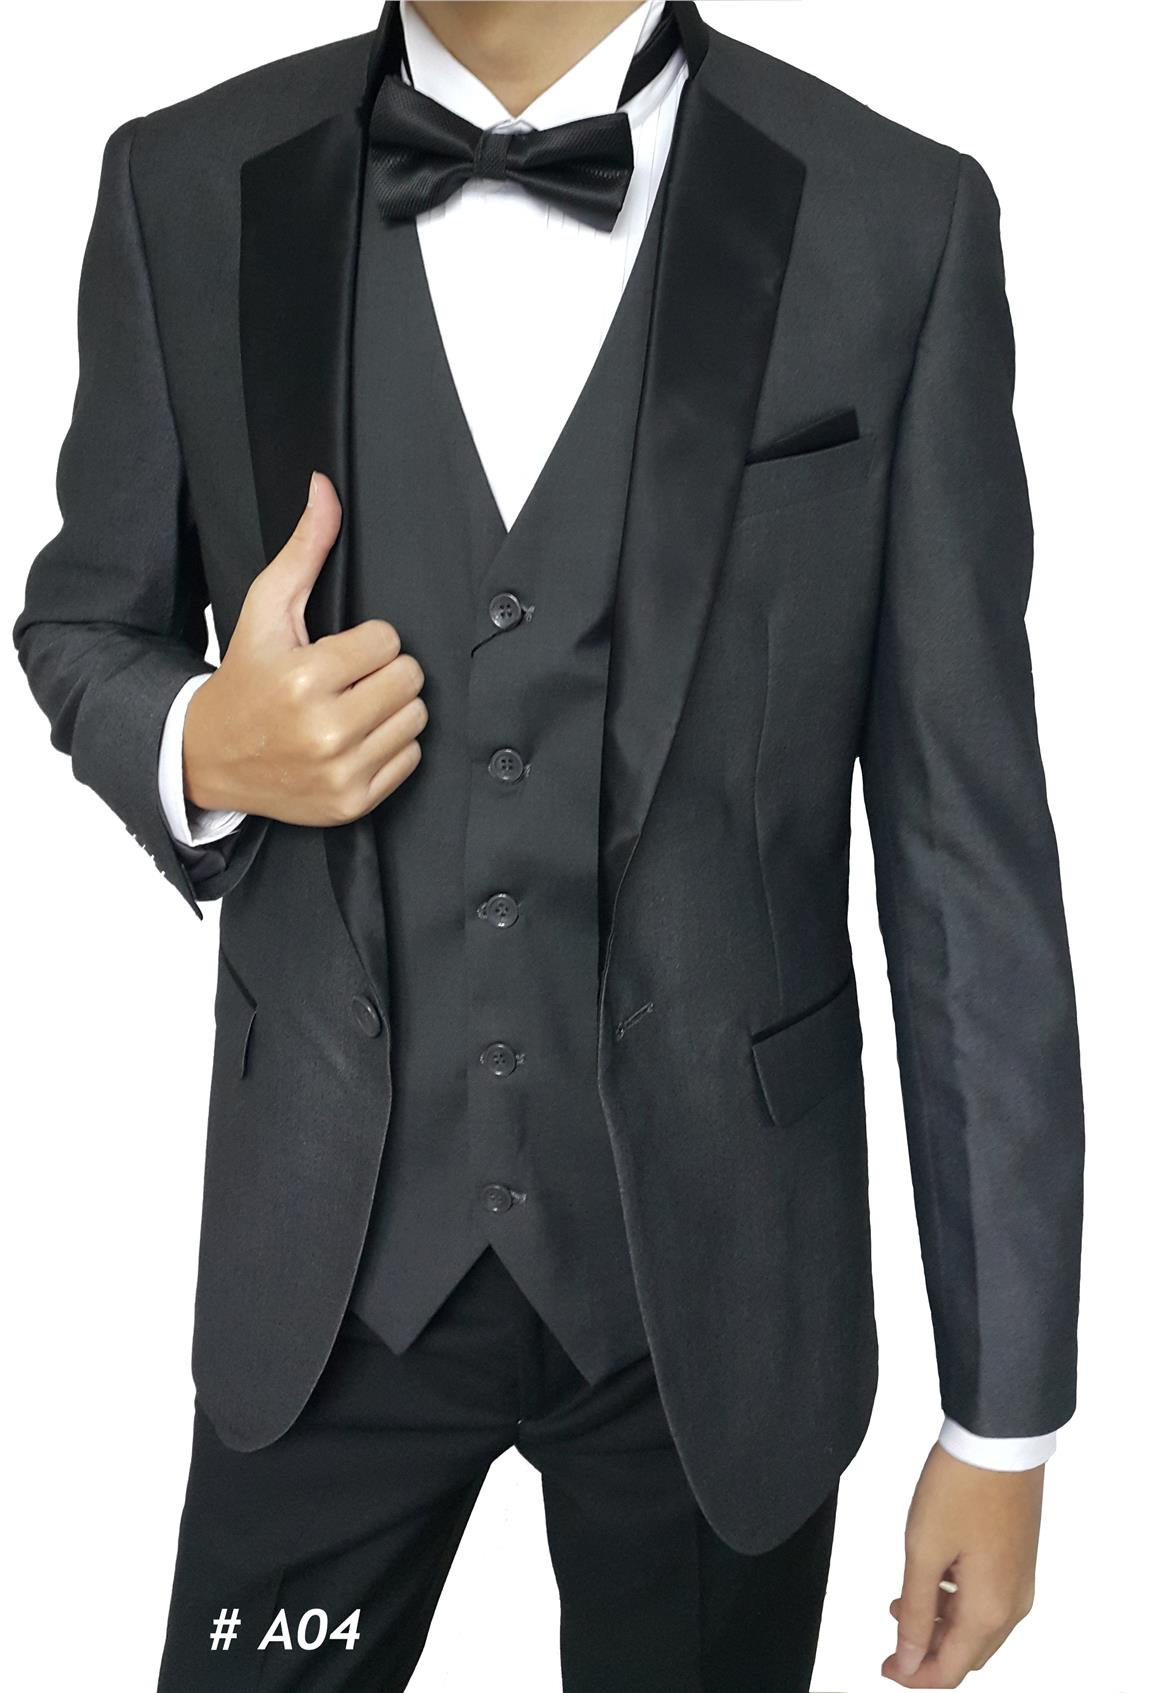 Mens Wedding Suits,Wedding Coats,Groom Tuxedo-A04